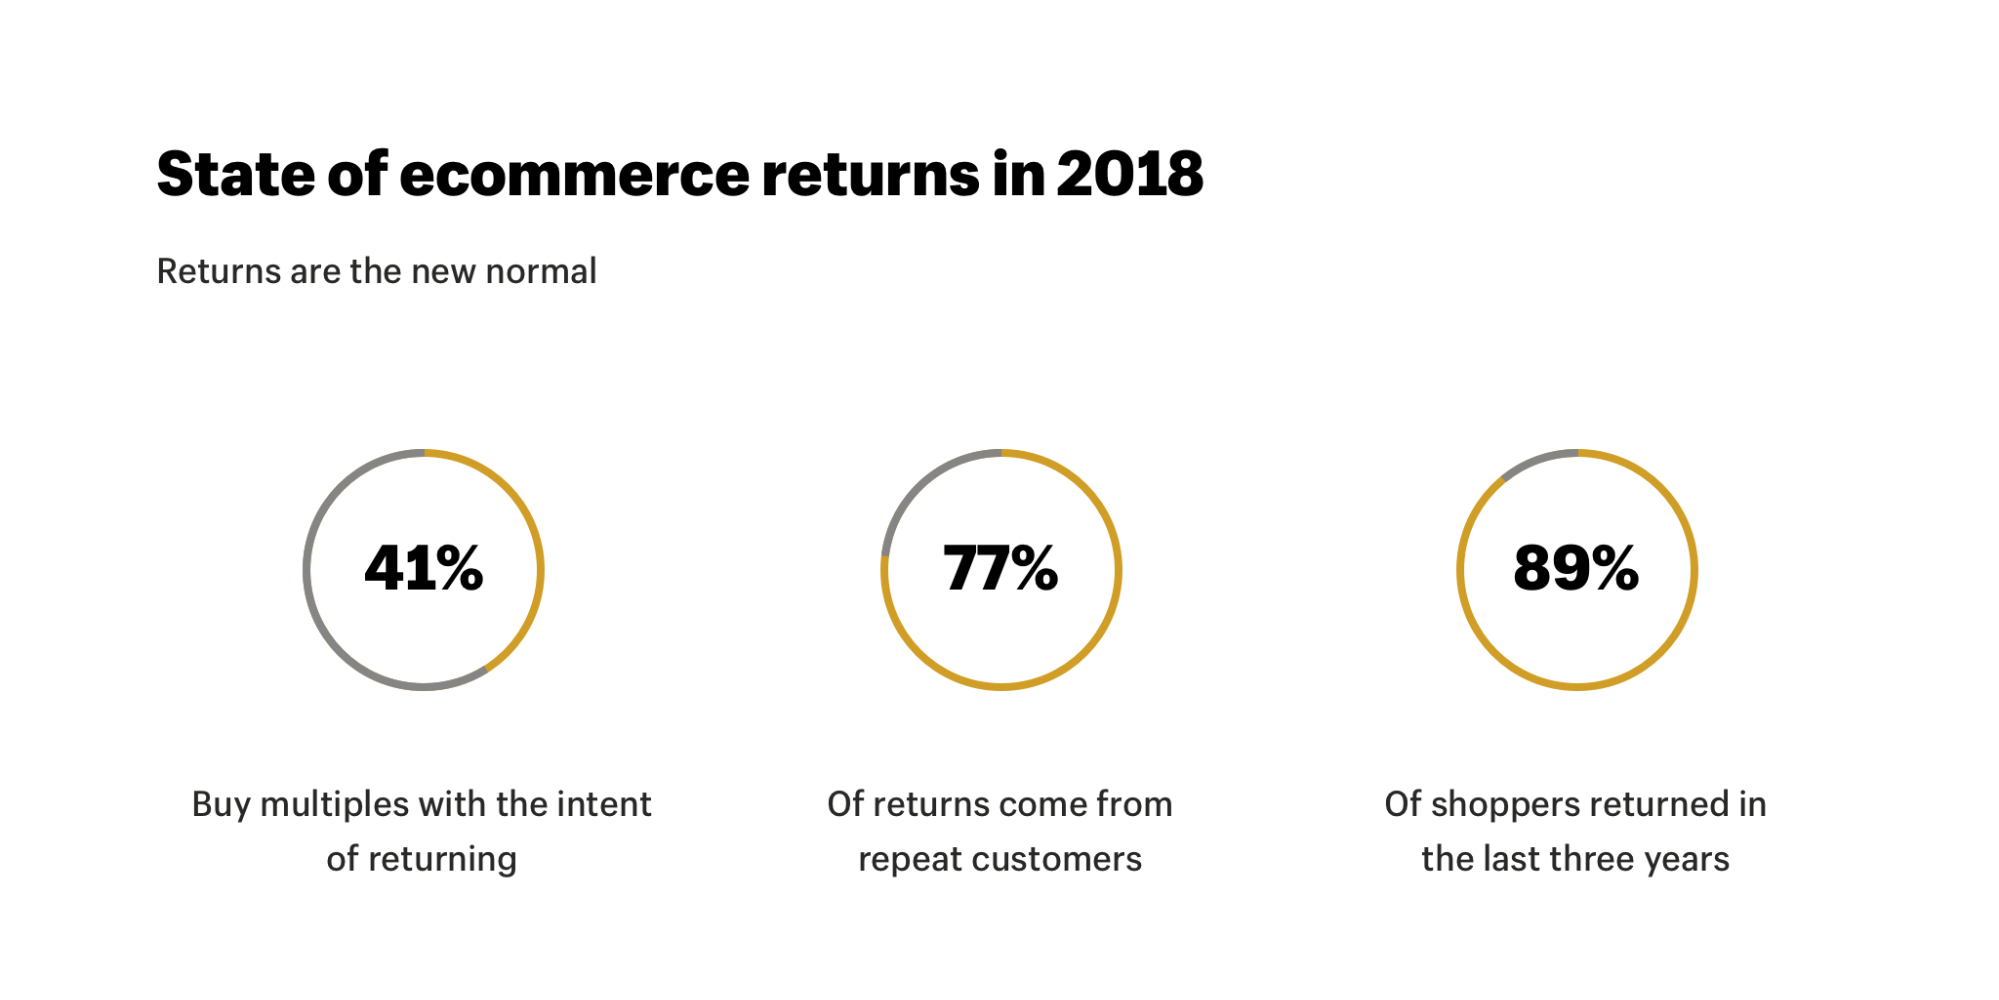 State of ecommerce returns in 2018